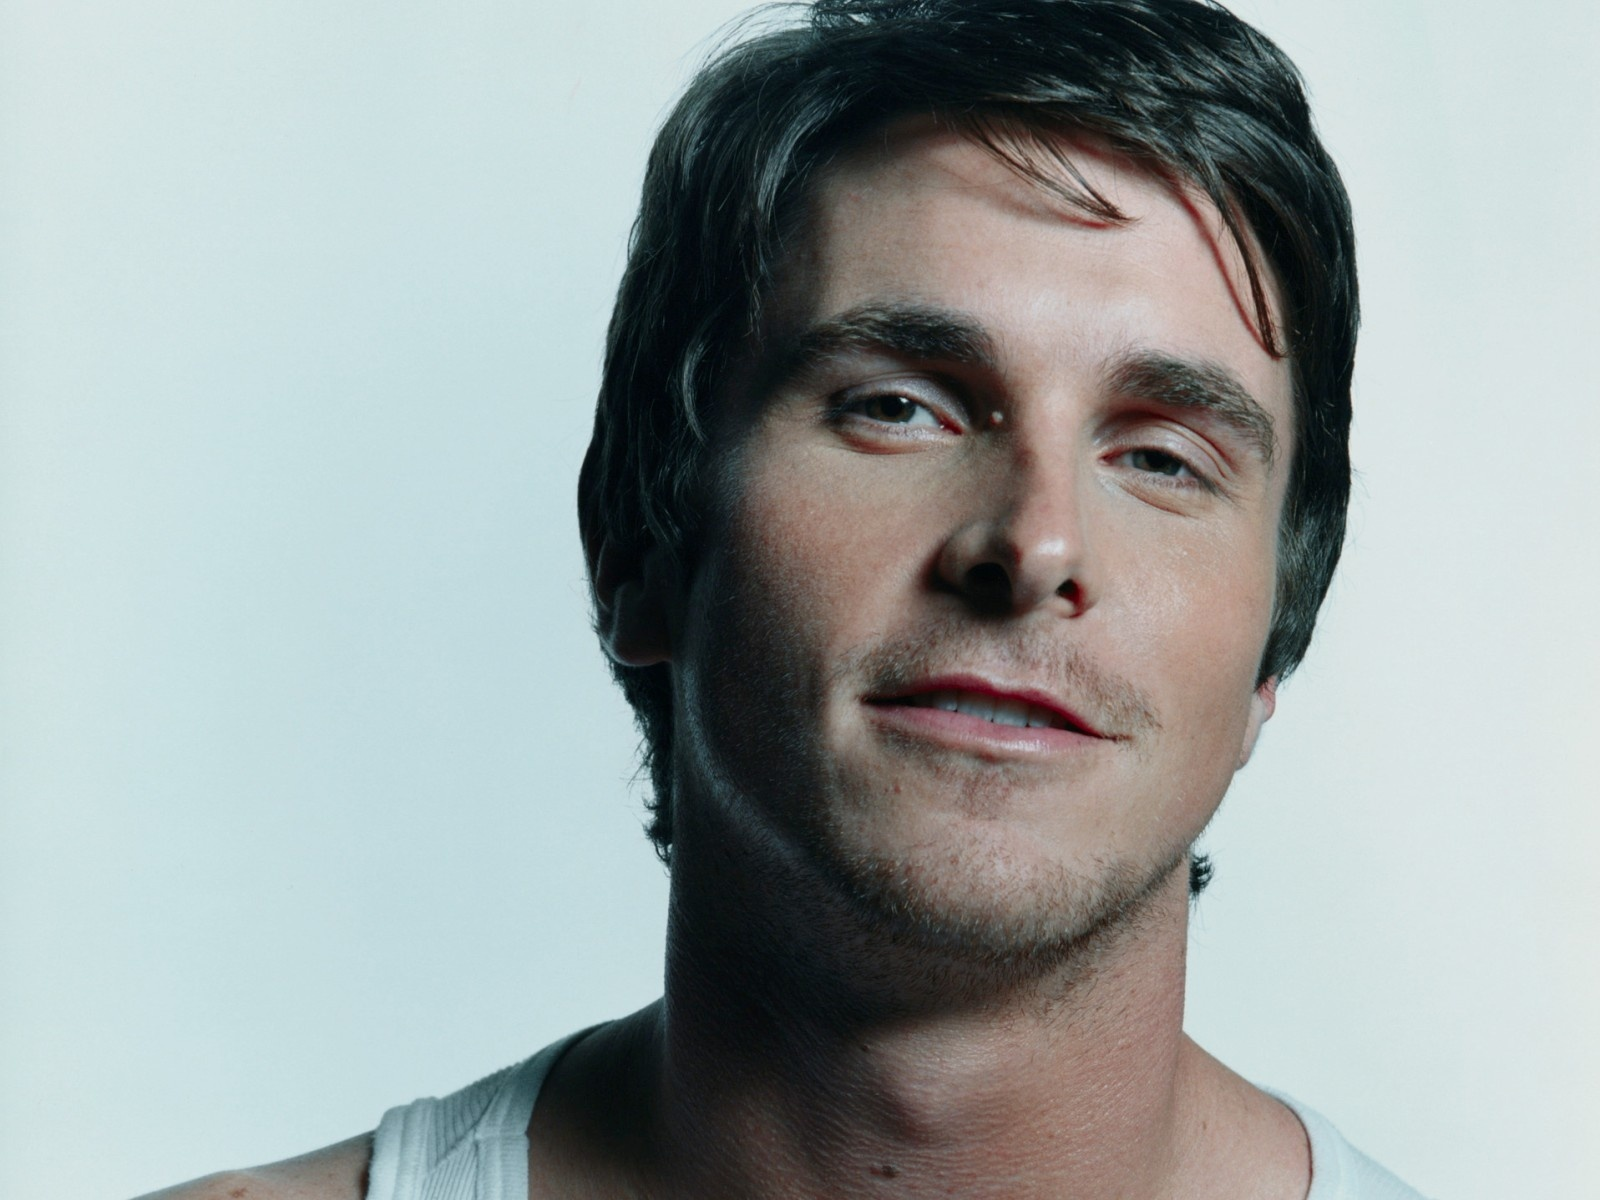 1600x1200 - Christian Bale Wallpapers 11